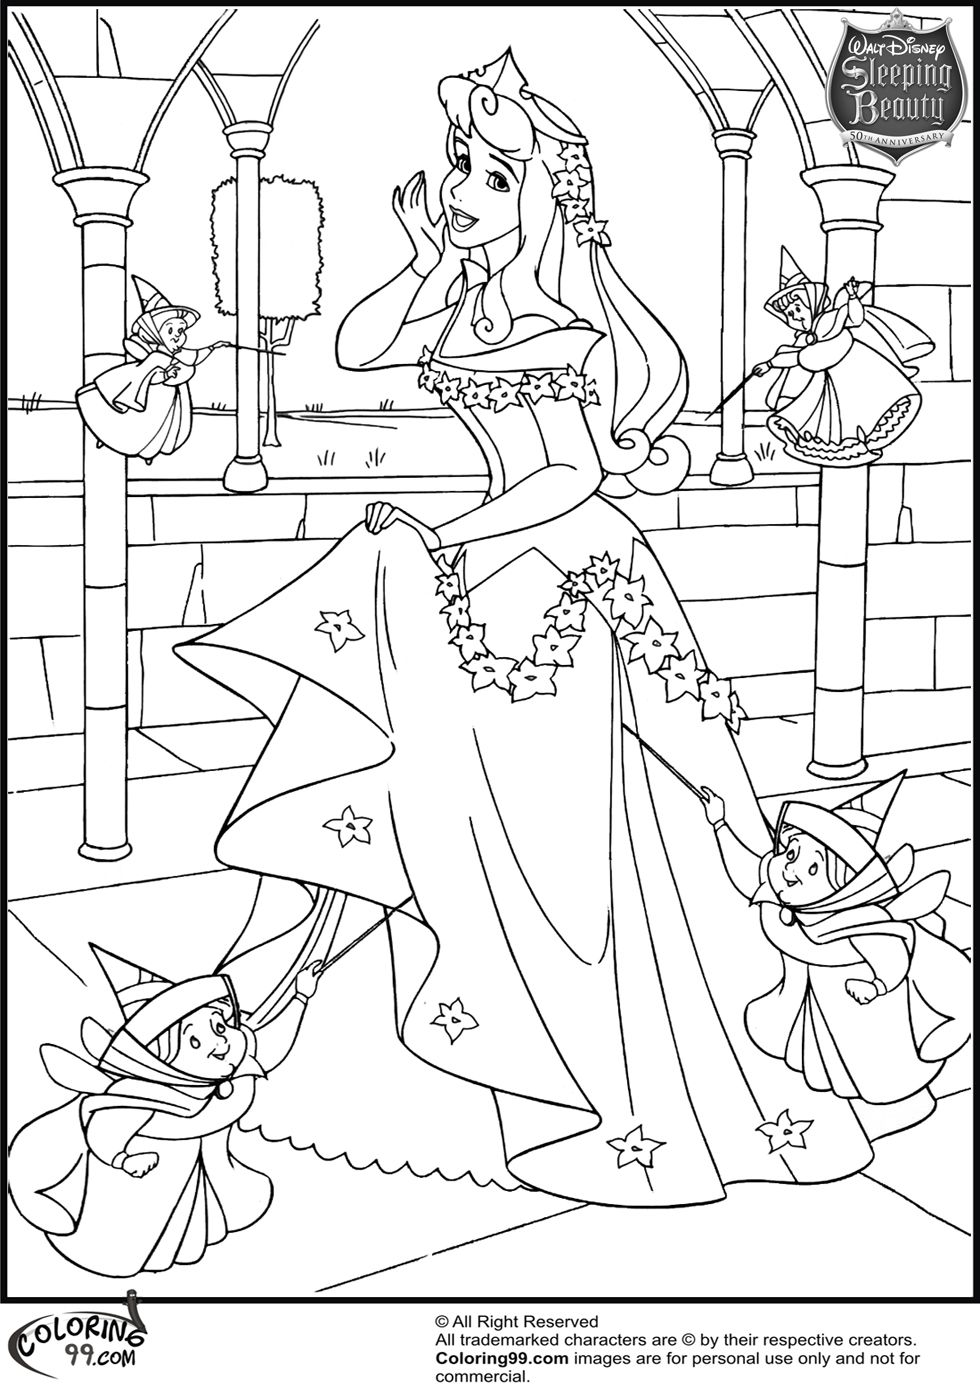 Disney Princess Aurora Coloring Pages Team Colors Princess Coloring Pages Sleeping Beauty Coloring Pages Disney Princess Colors